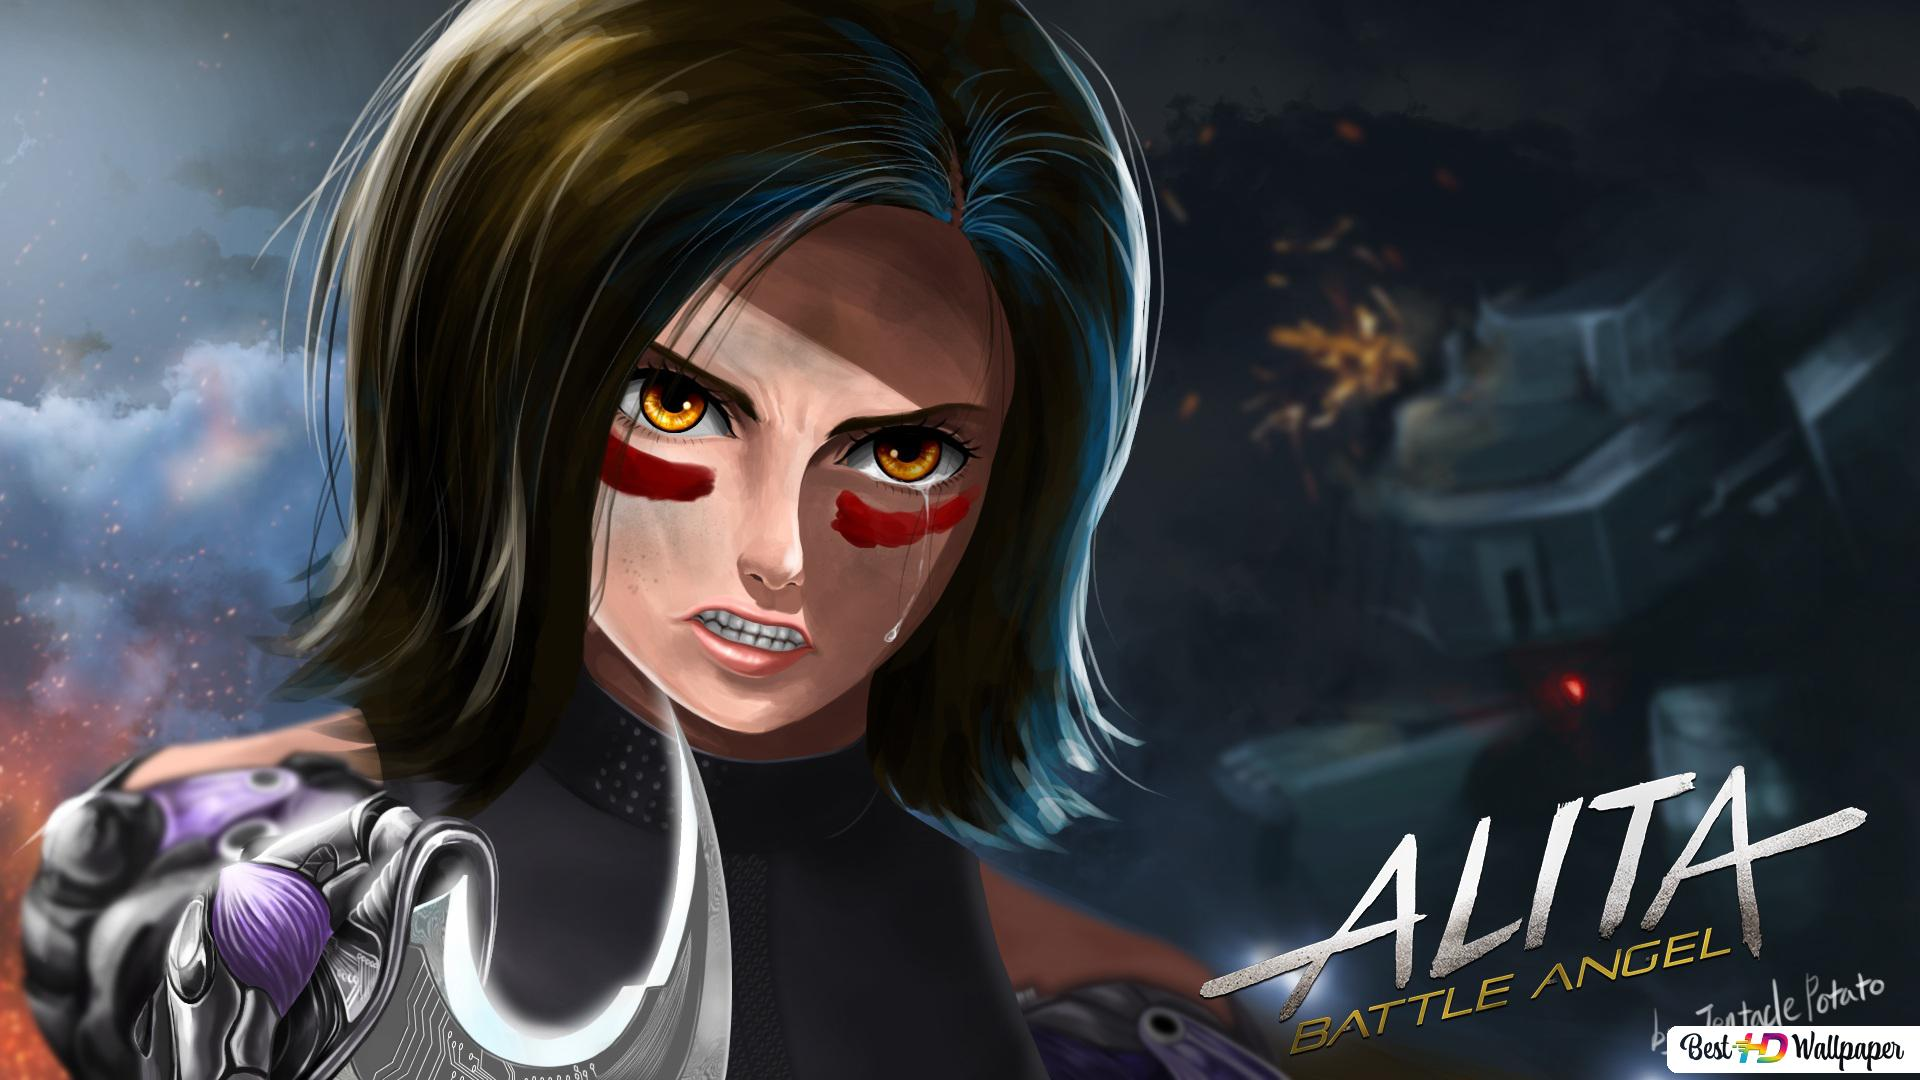 Alita Battle Angel Art Hd Wallpaper Download